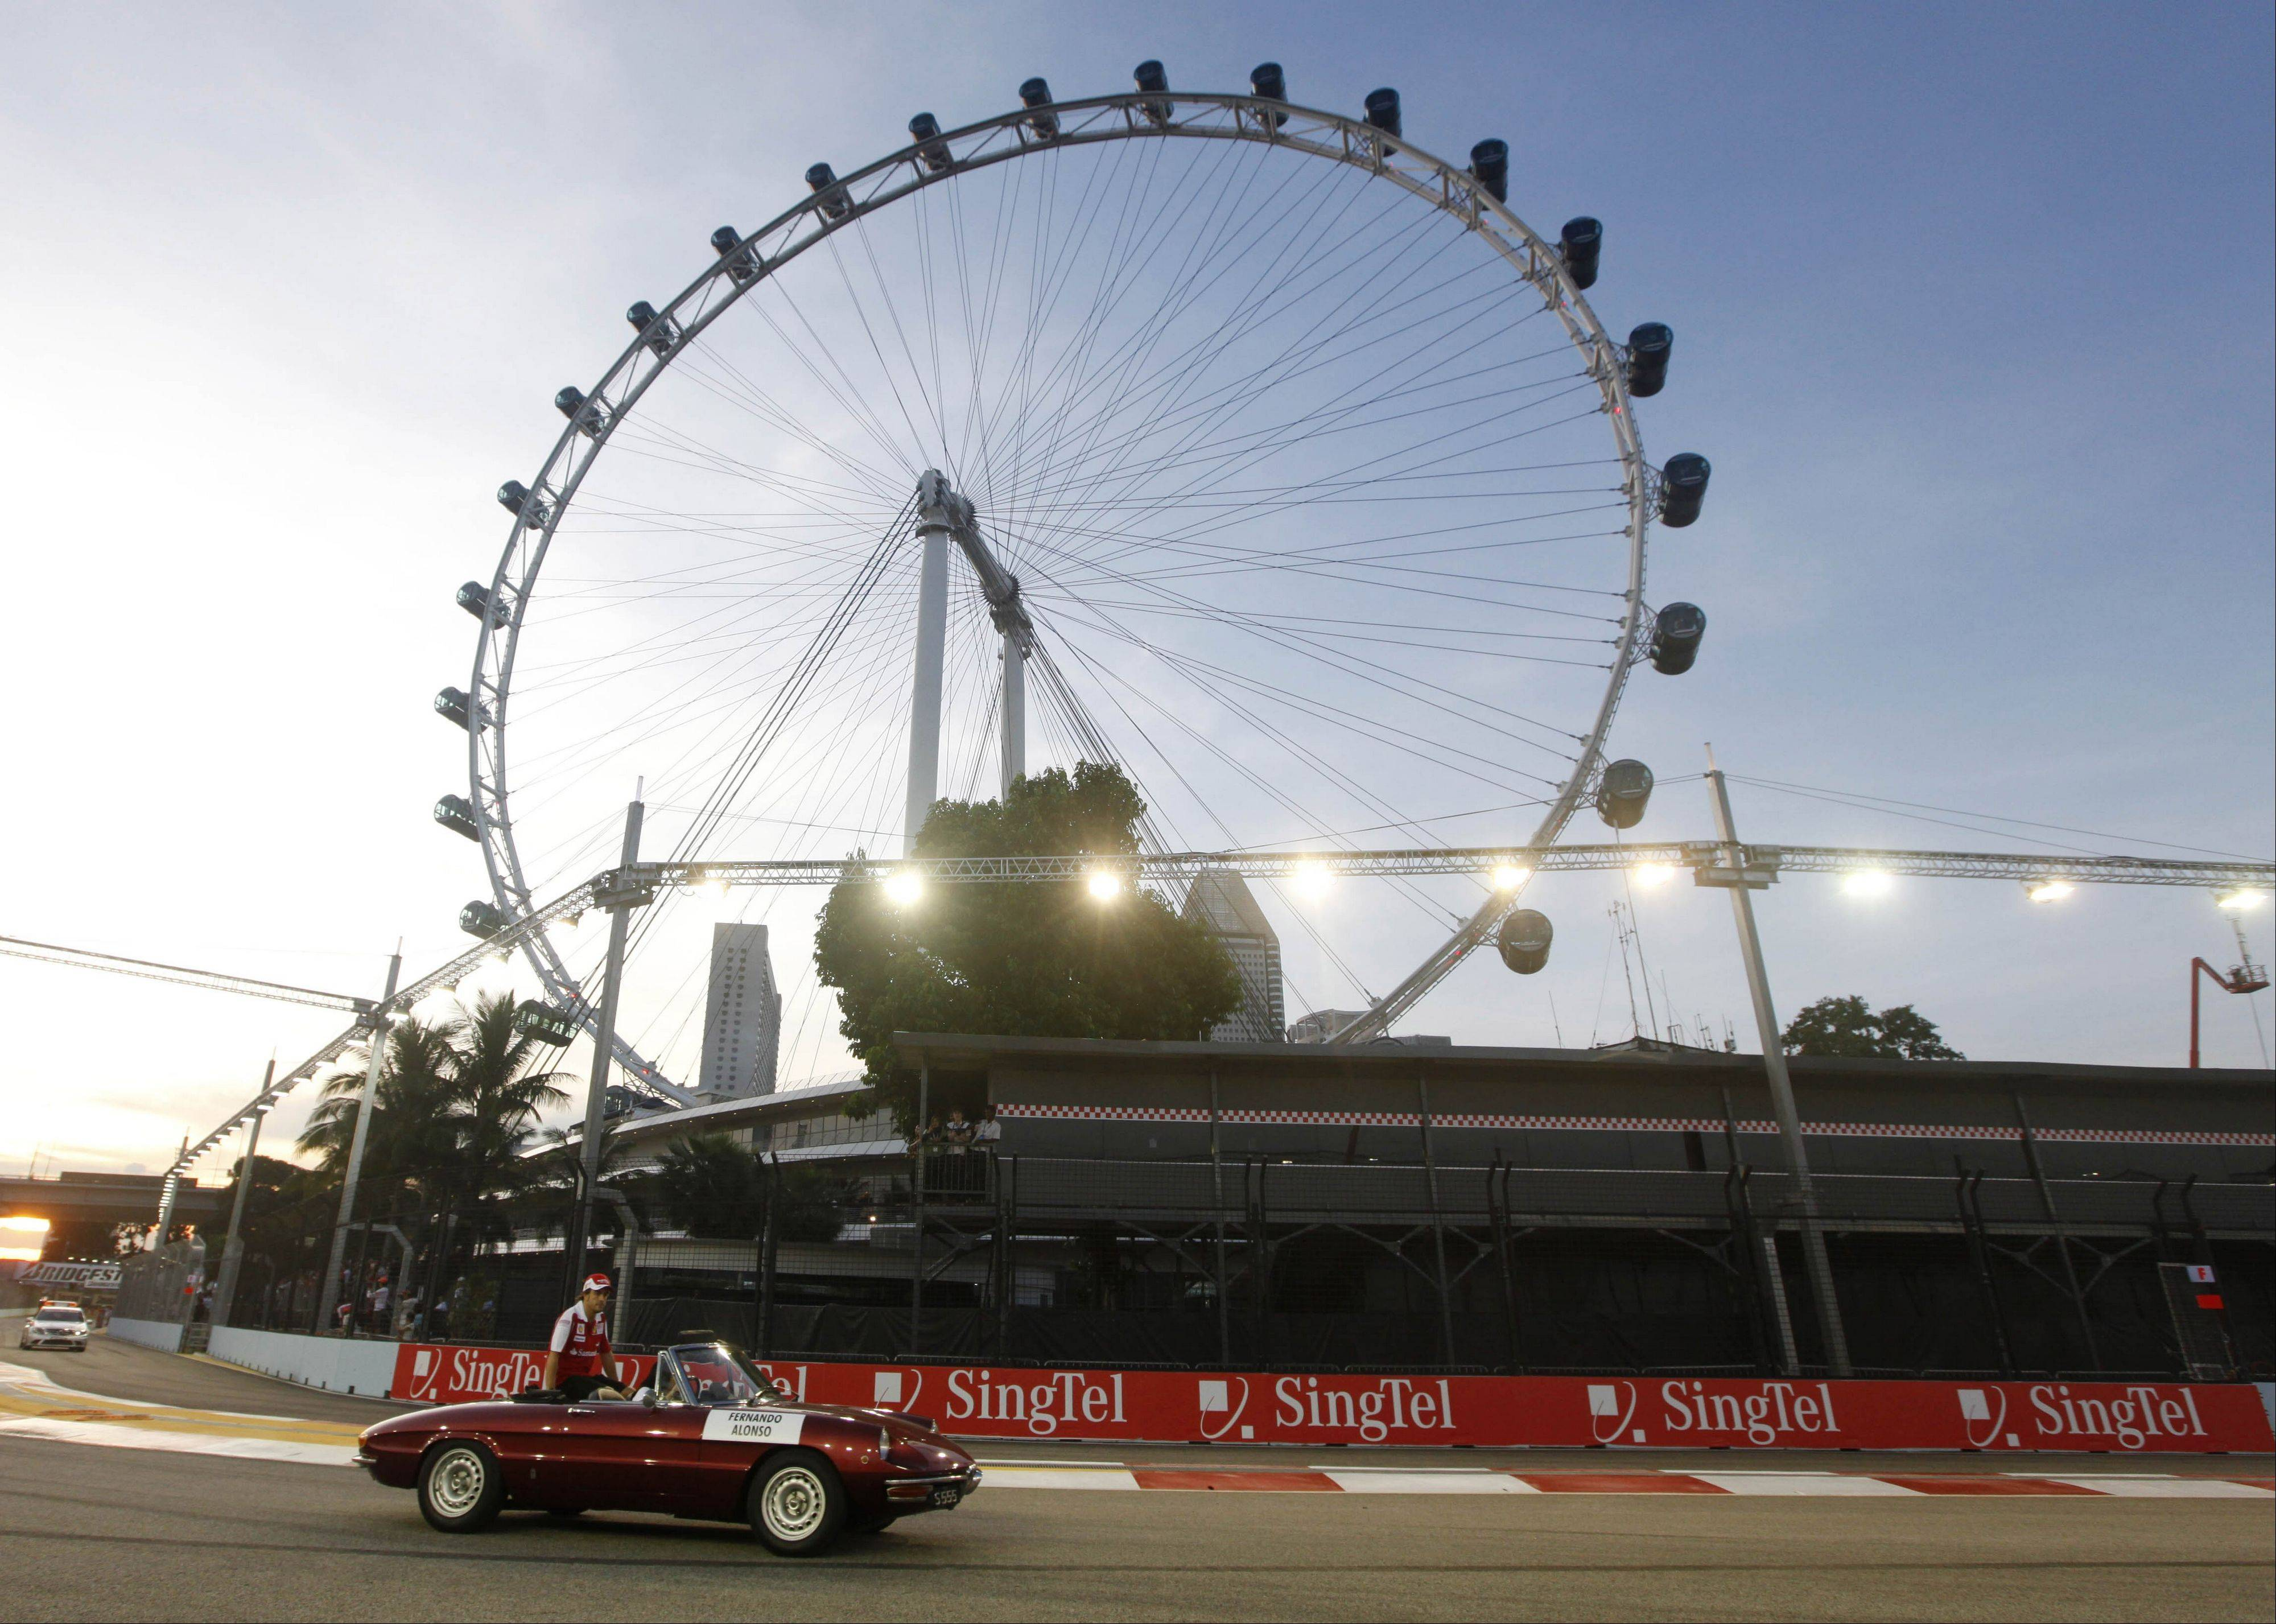 FILE � In this Sept. 26, 2010 file photo, Ferrari Formula One driver Fernando Alonso of Spain is driven past the 541 foot tall �Singapore Flyer� Ferris wheel during the driver� parade prior to the start of the Singapore Grand Prix on the Marina Bay City Circuit in Singapore. The proposed New York Wheel in the Staten Island borough of New York is planned to be 625 feet tall, and expected to open by the end of 2015. (AP Photo/Mark Baker, File)